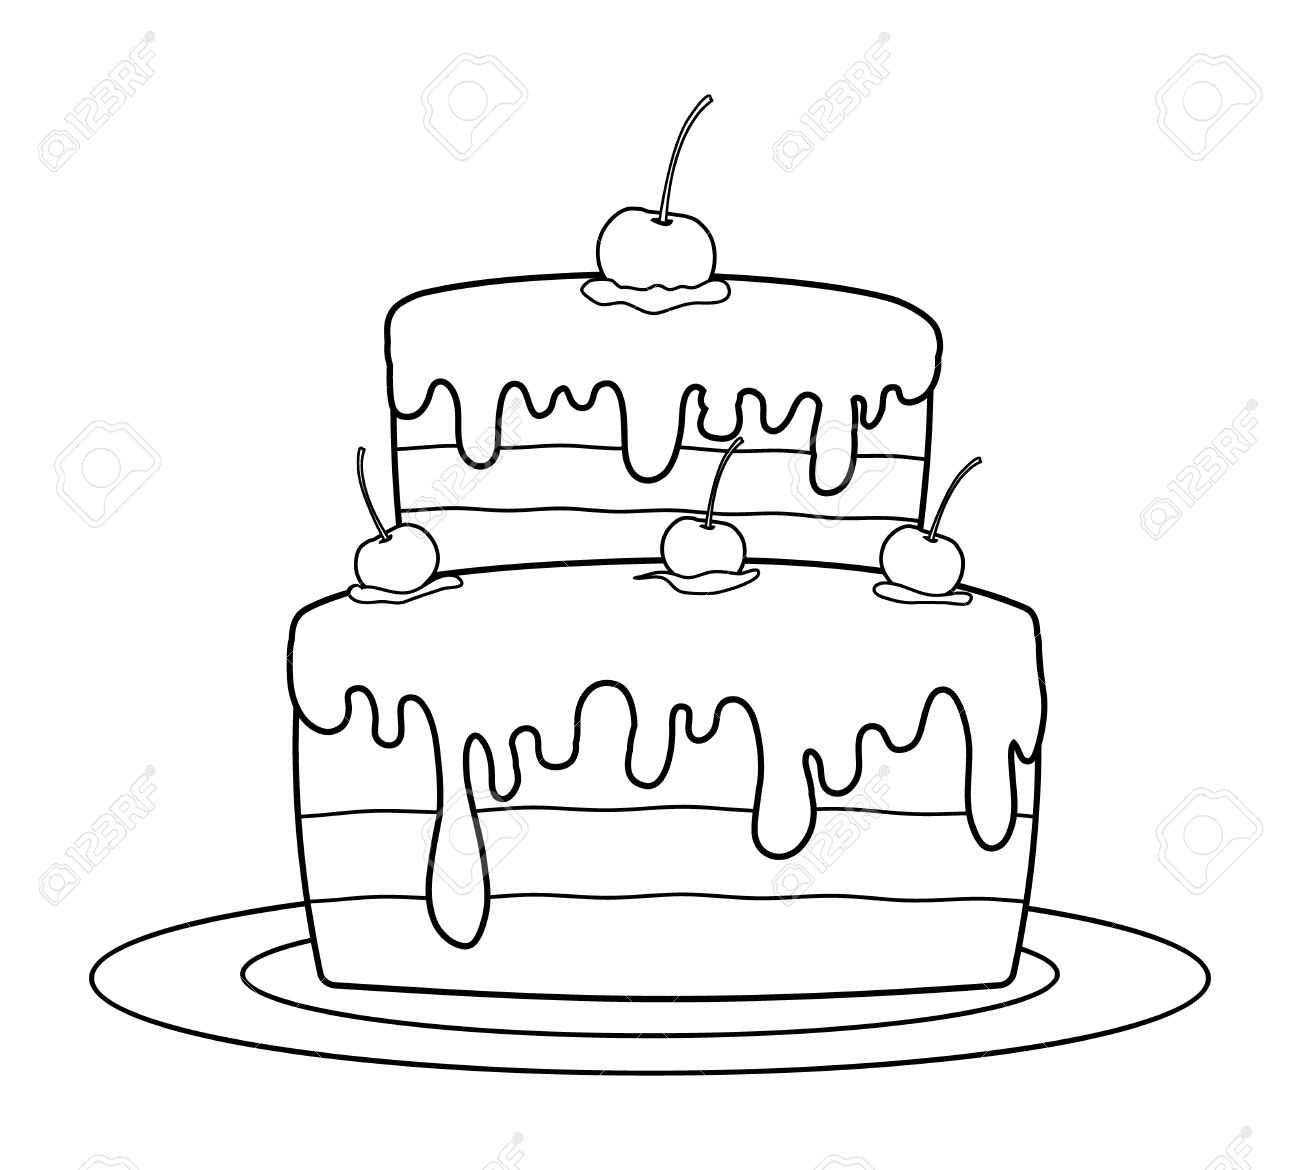 Outlined Birthday Cake For Coloring Book Vector Royalty Free ...